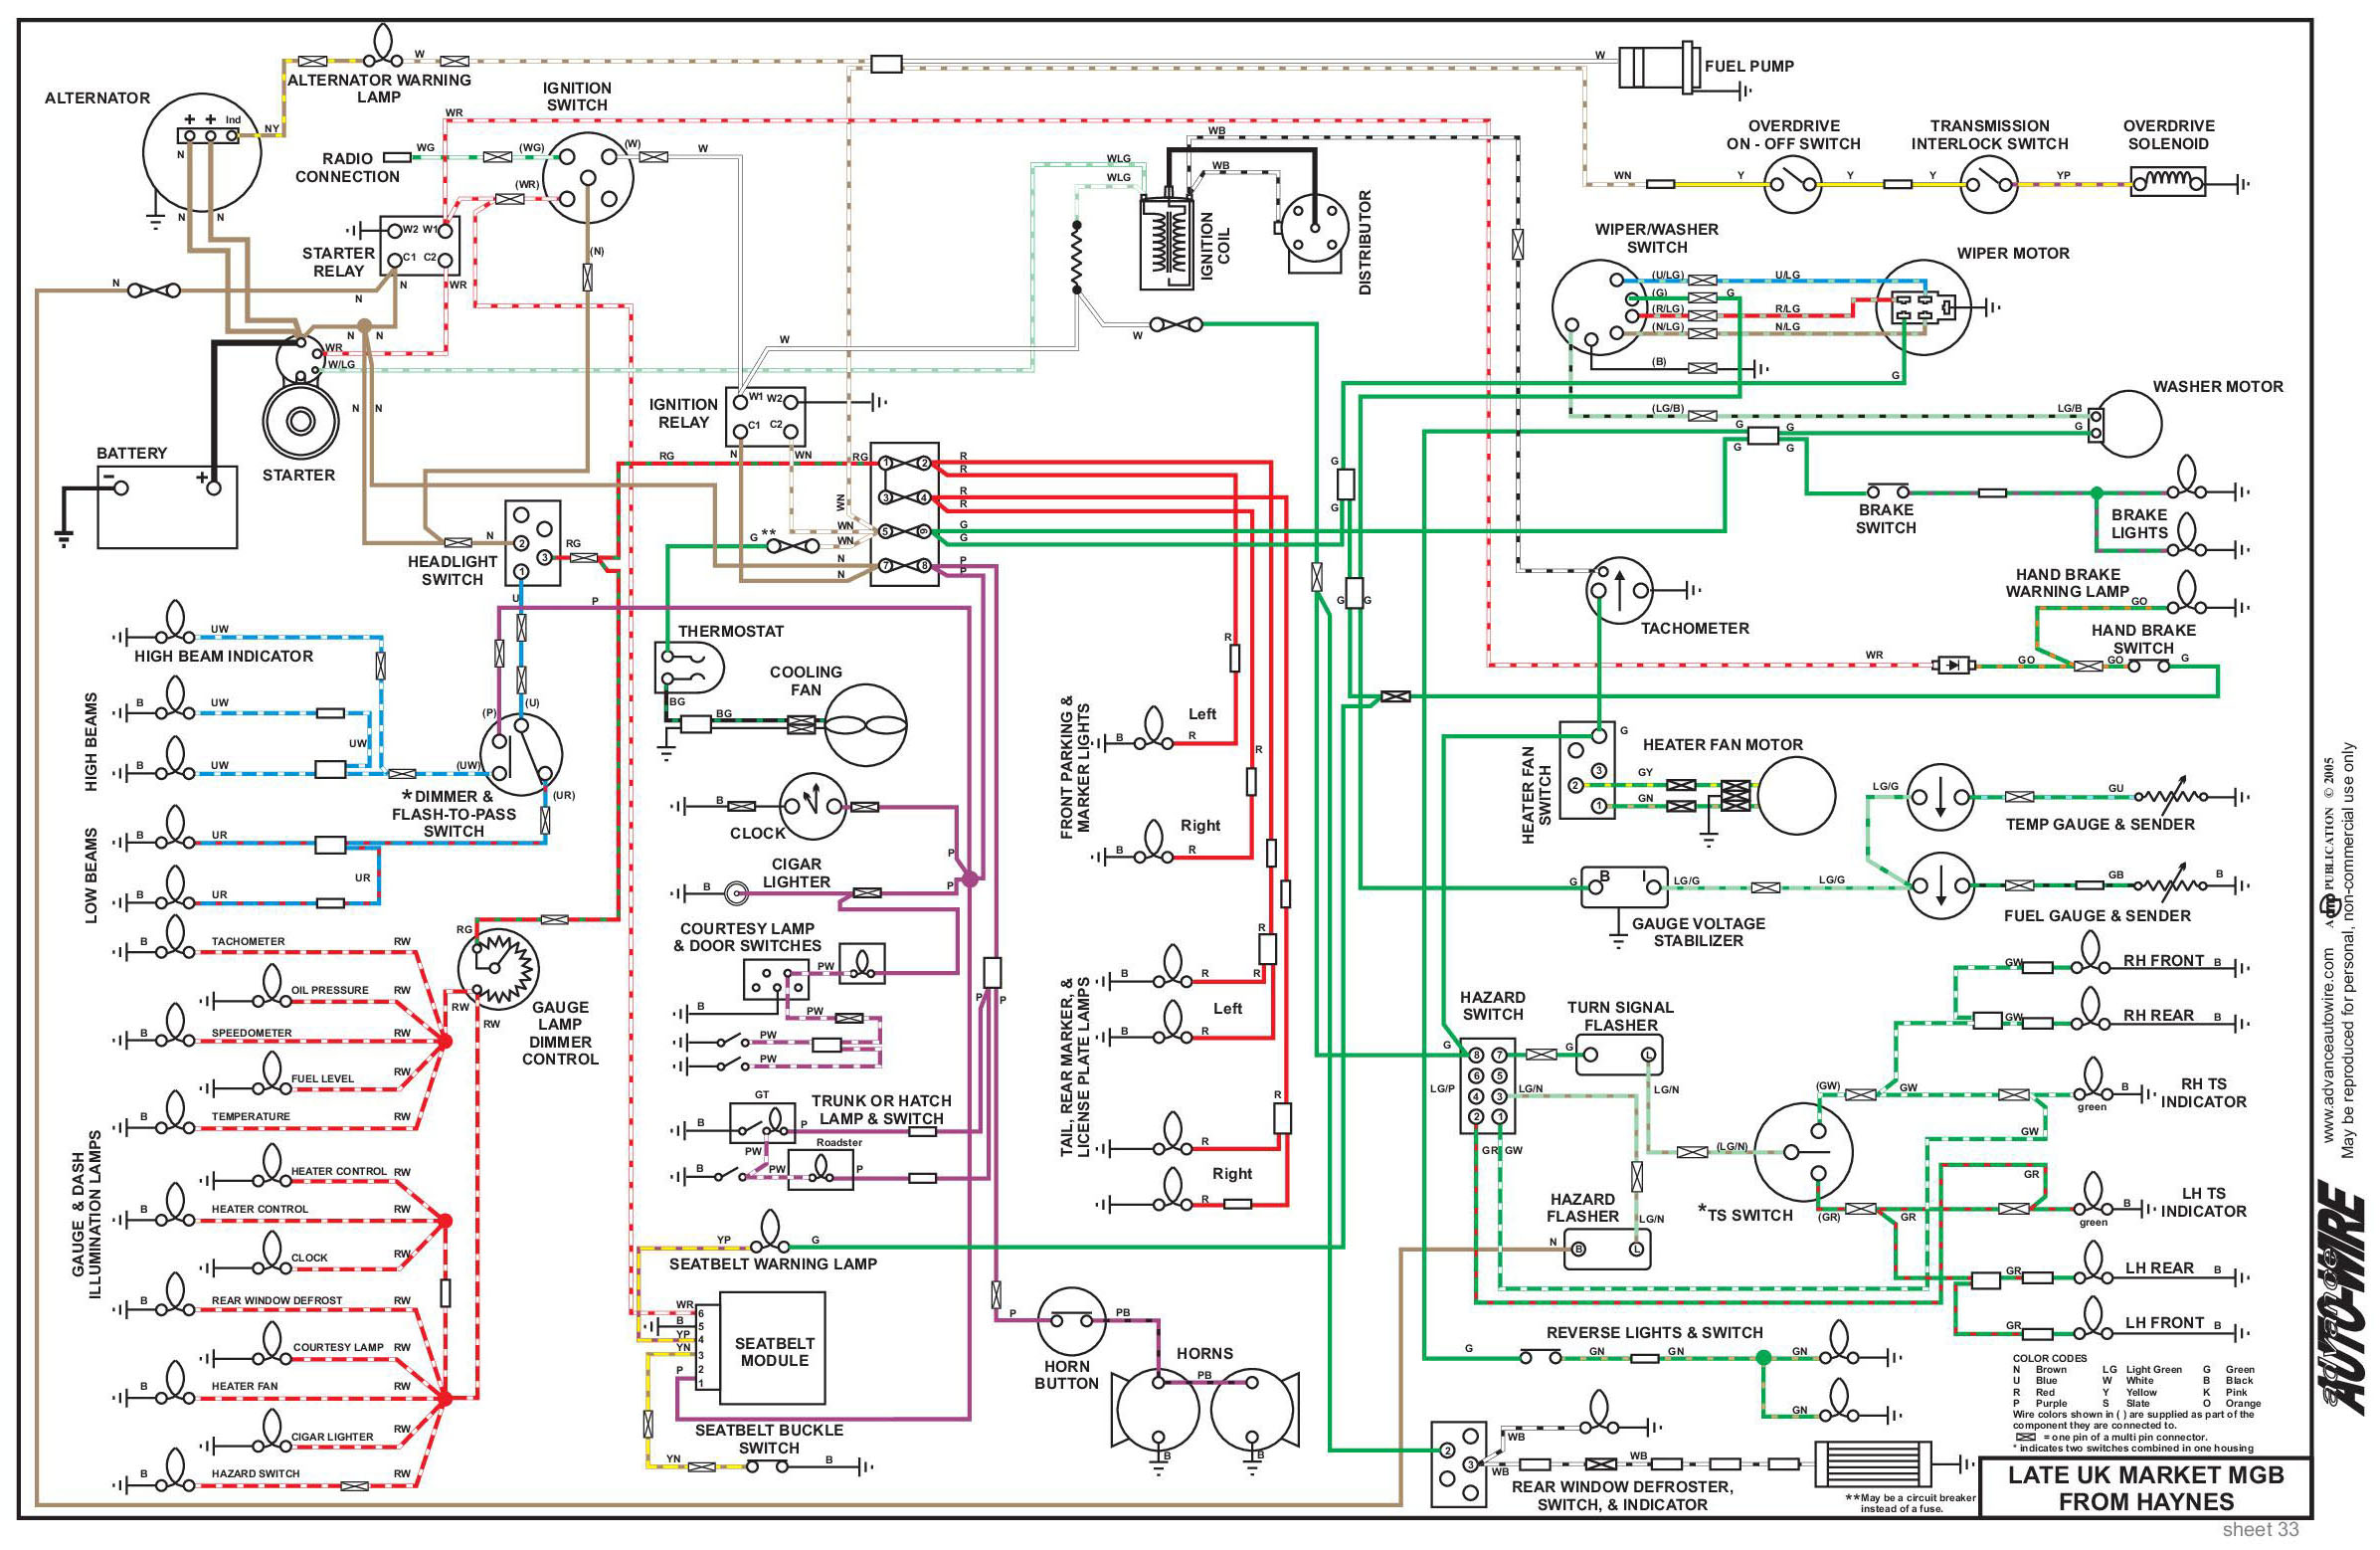 mgb wiring diagram symbols mo 8485  this picture is a preview of bentley mg b car wiring  preview of bentley mg b car wiring